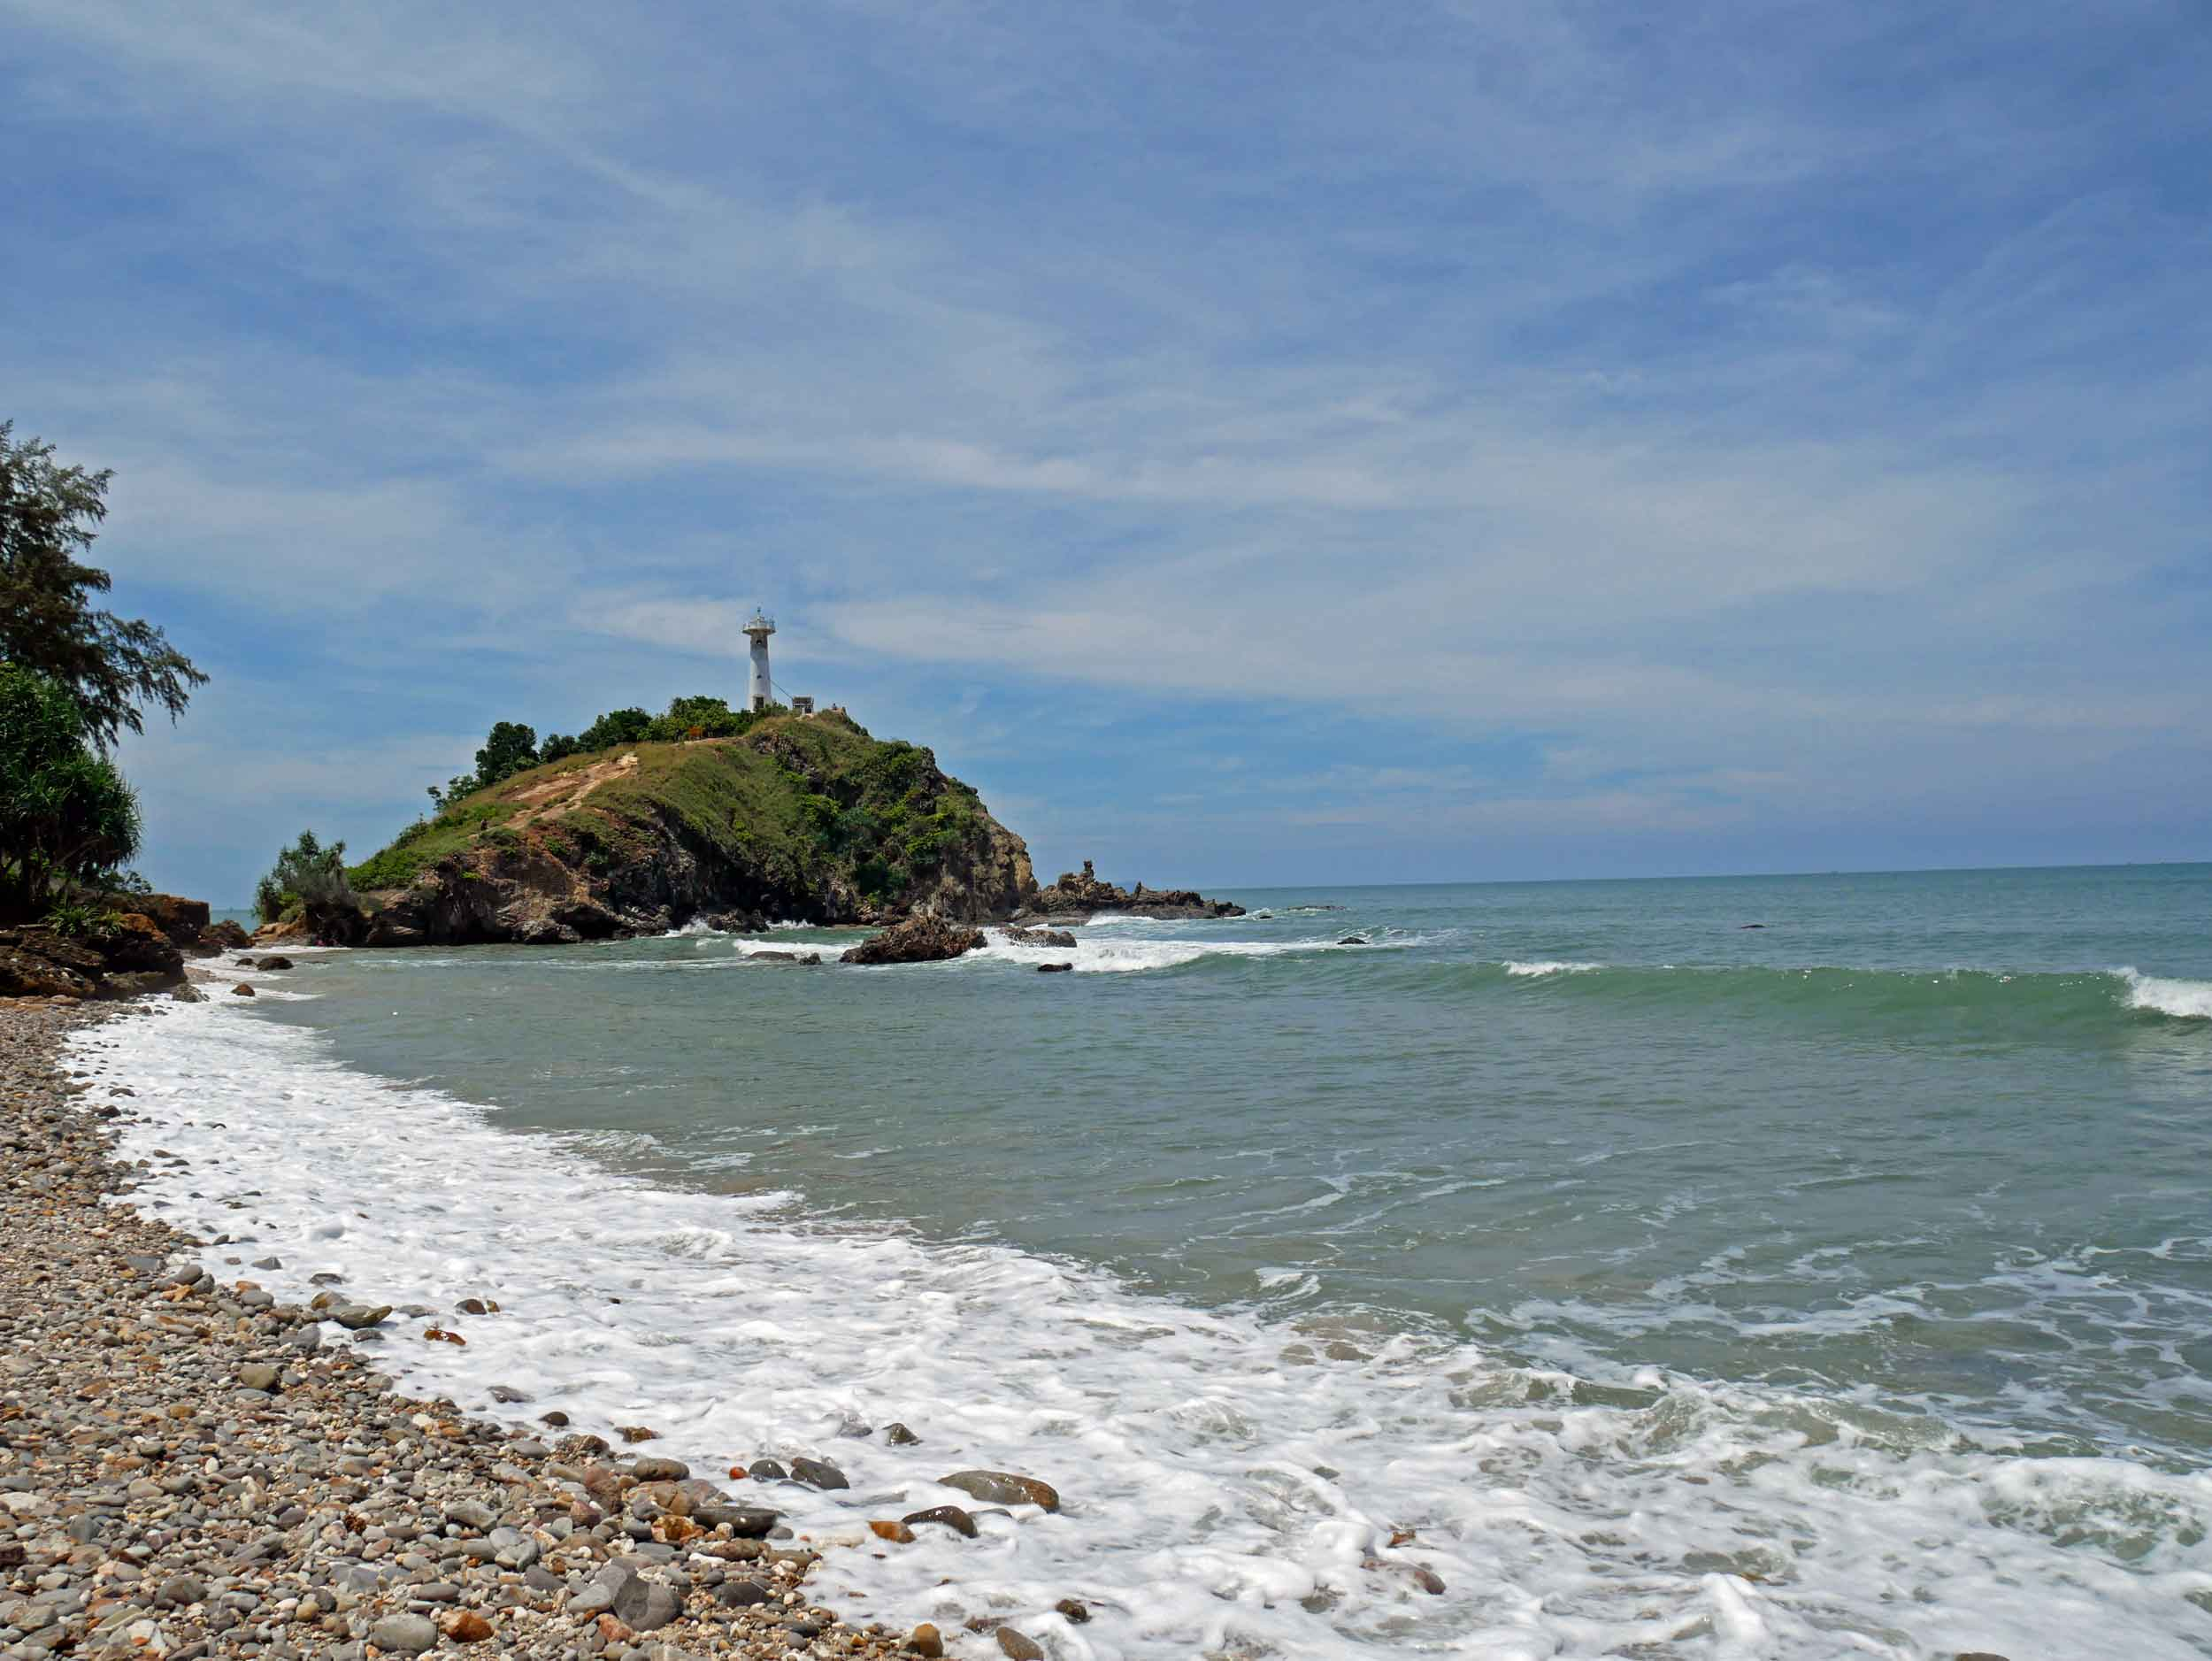 At the southern tip of Koh Lanta, one side of the national park has a rocky coast, which together with the lighthouse made us feel like we had been transported to New England.